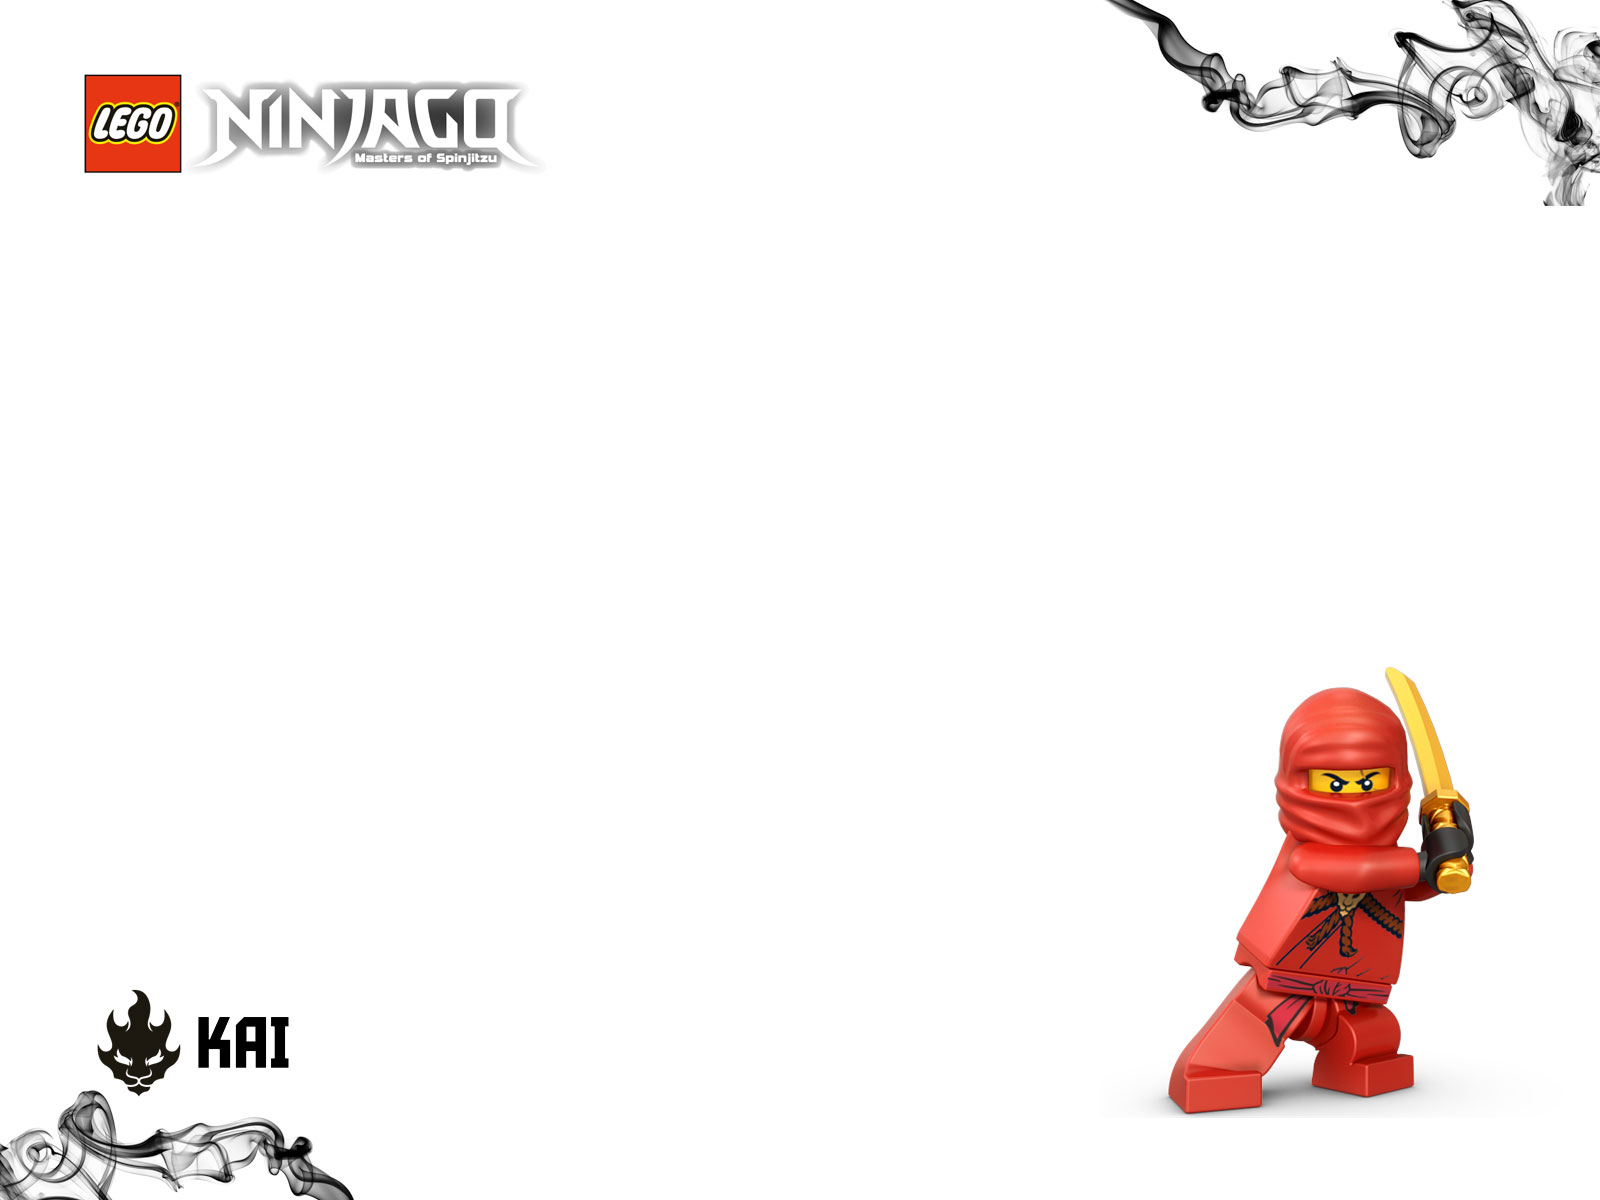 lego ninjago wallpaper high - photo #20